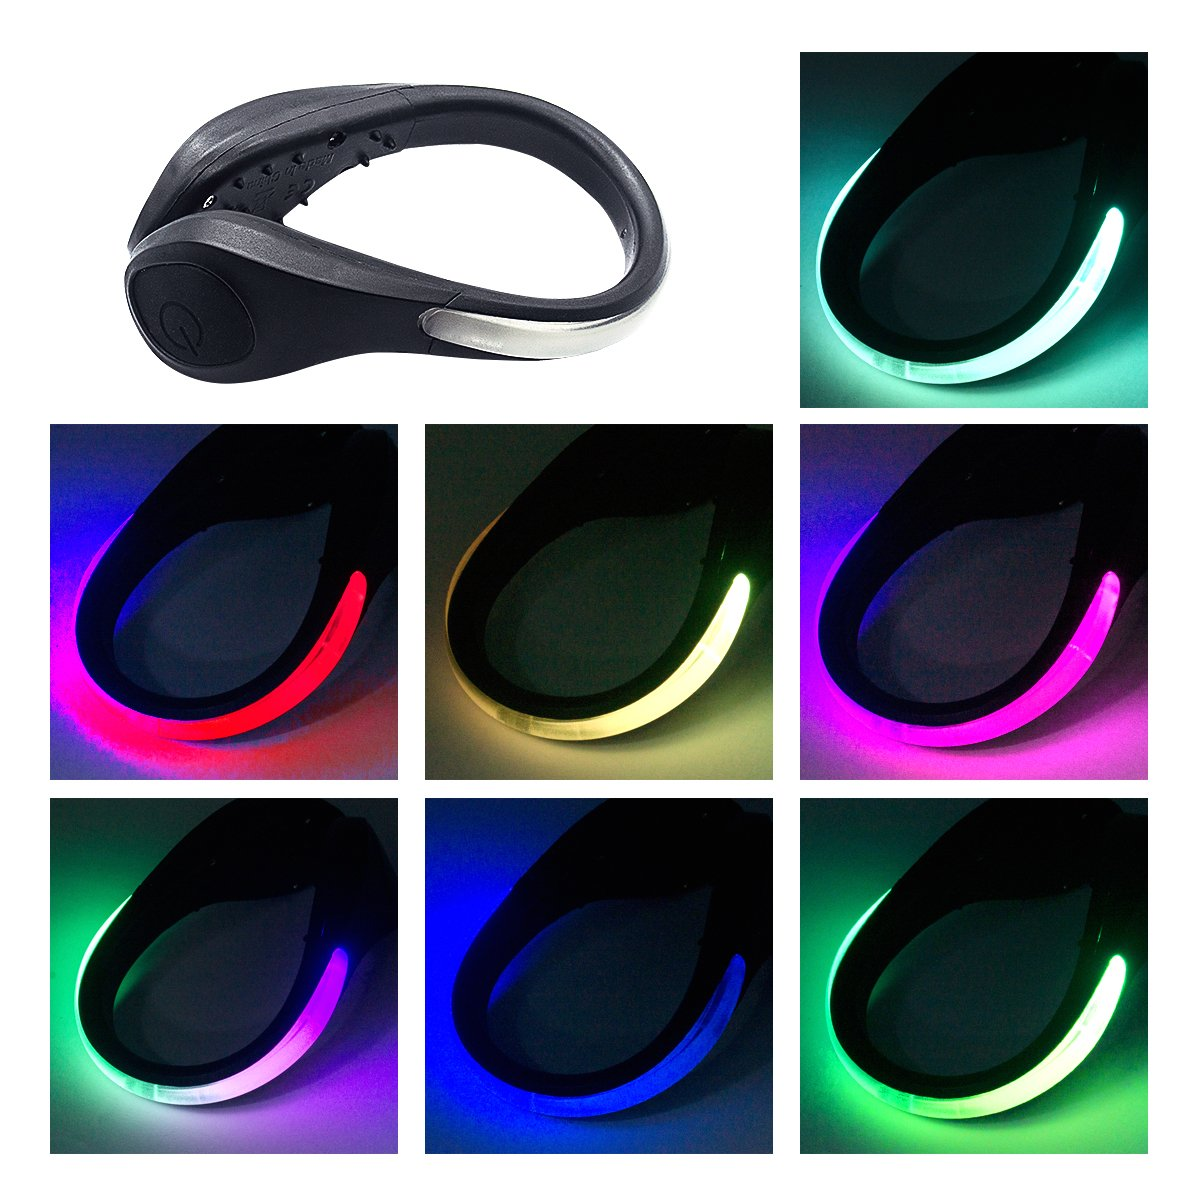 TEQIN Black Shell Colorful LED Flash Shoe Safety Clip Lights for Runners & Night Running Gear - Reflective Running Gear for Running, Jogging, Walking, Spinning or Biking + Velvet Bag - (Set of 2)